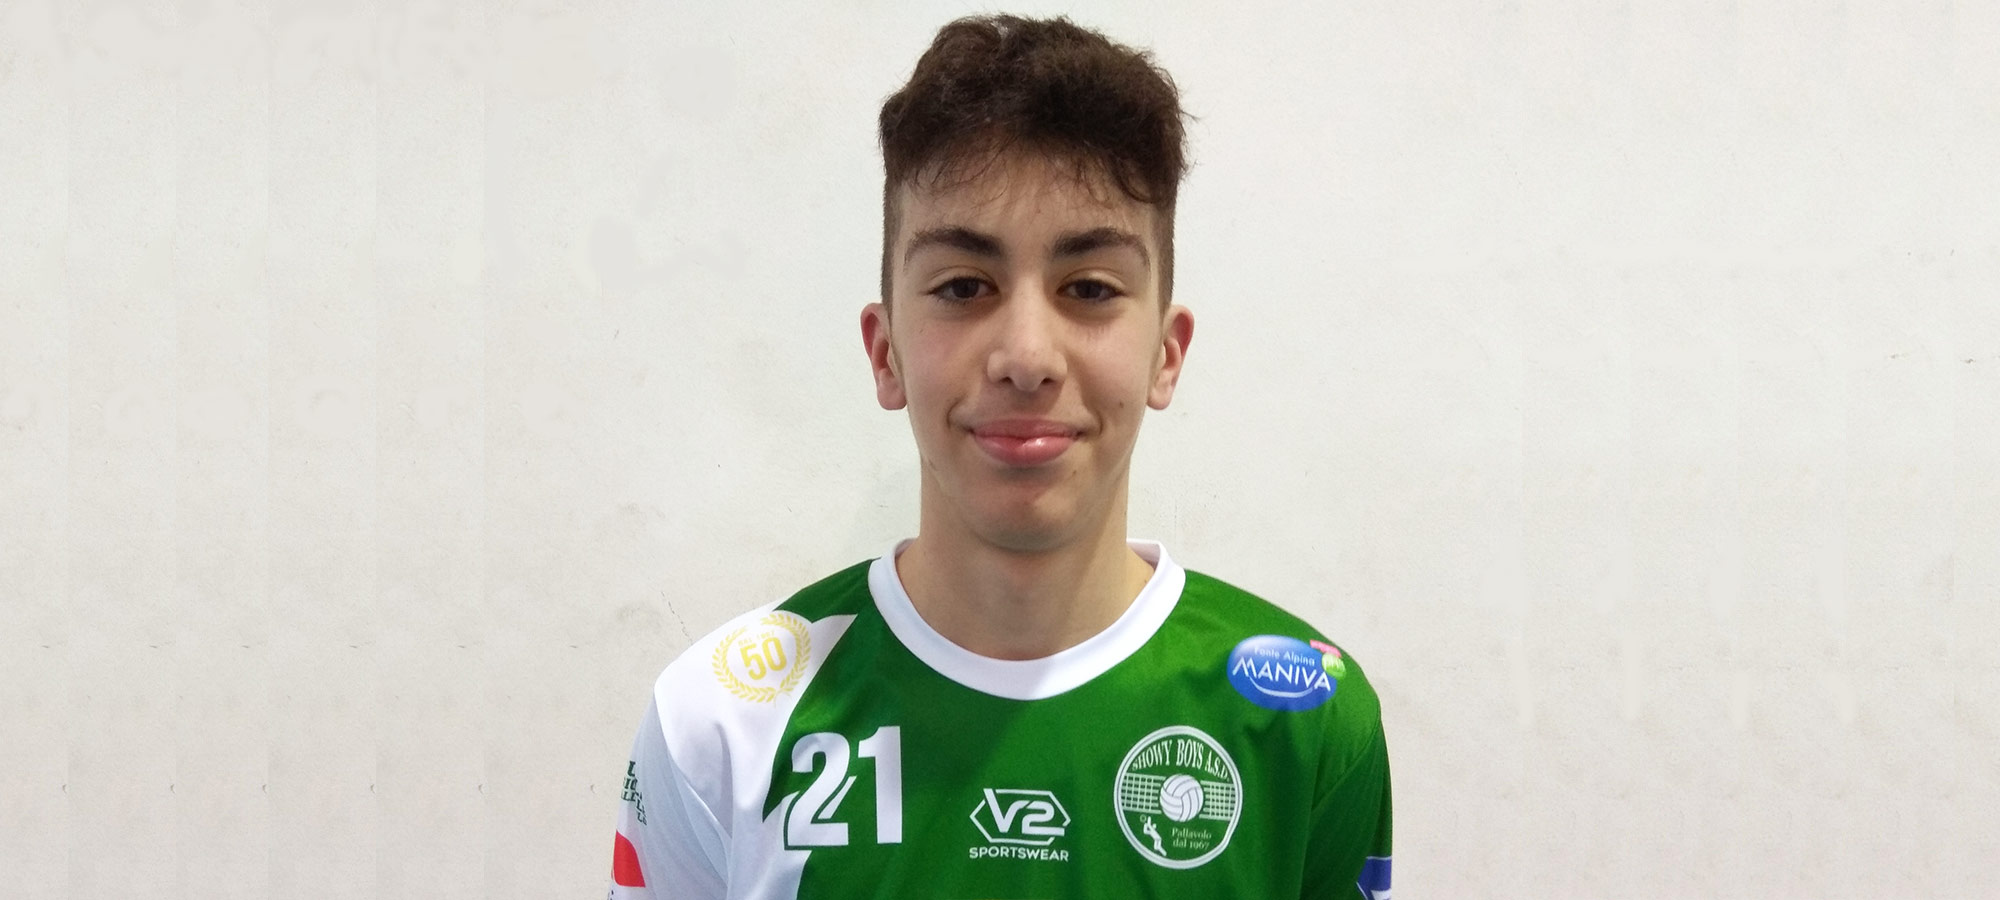 L'allievo Showy Boys Lorenzo Verri al RegionalDay 2019